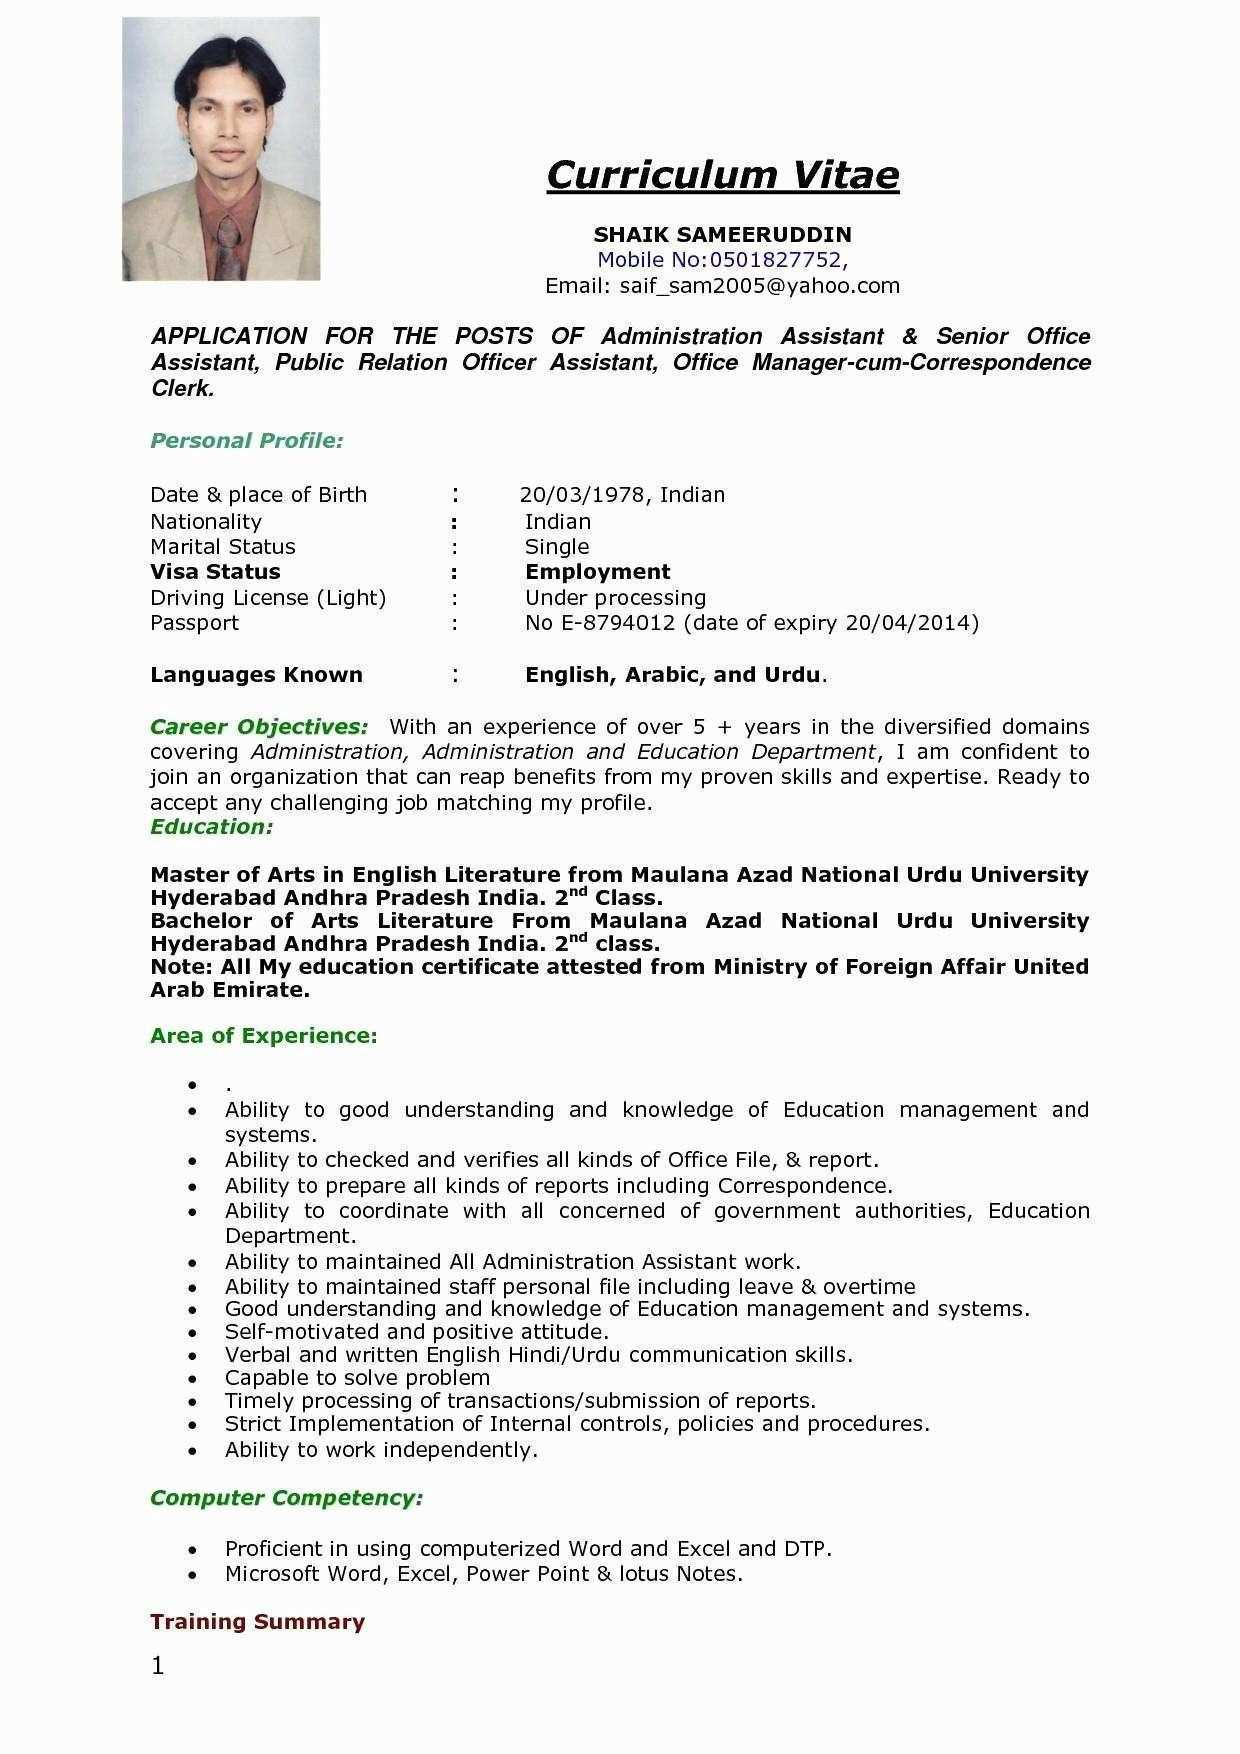 Office Assistant Resume Sample Pdf Lovely Business License Template Awesome Resume Sample New Blank Job Resume Format Curriculum Vitae Teacher Resume Examples